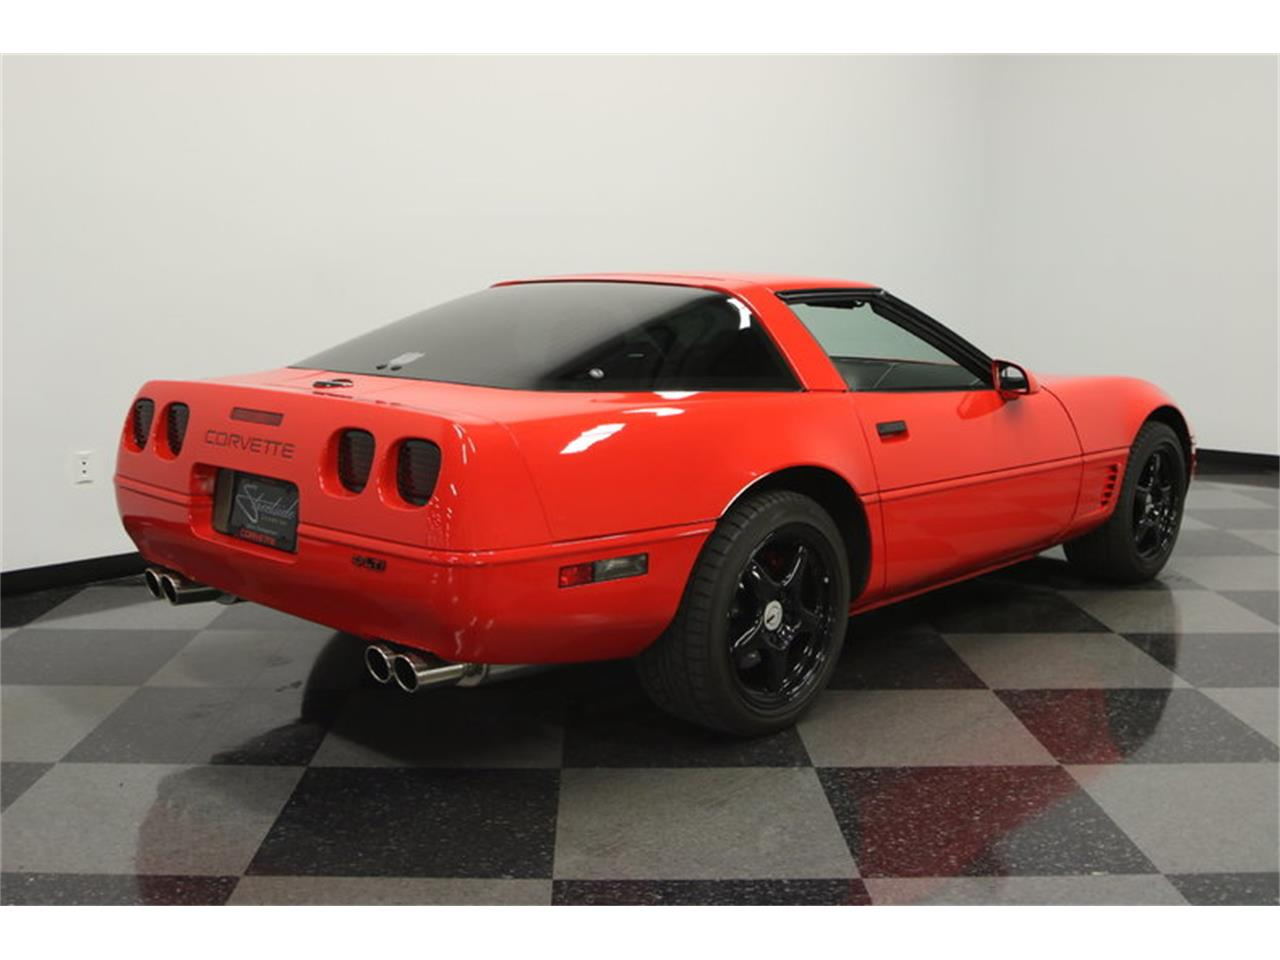 Large Picture of '95 Chevrolet Corvette located in Florida - $15,995.00 Offered by Streetside Classics - Tampa - IURO